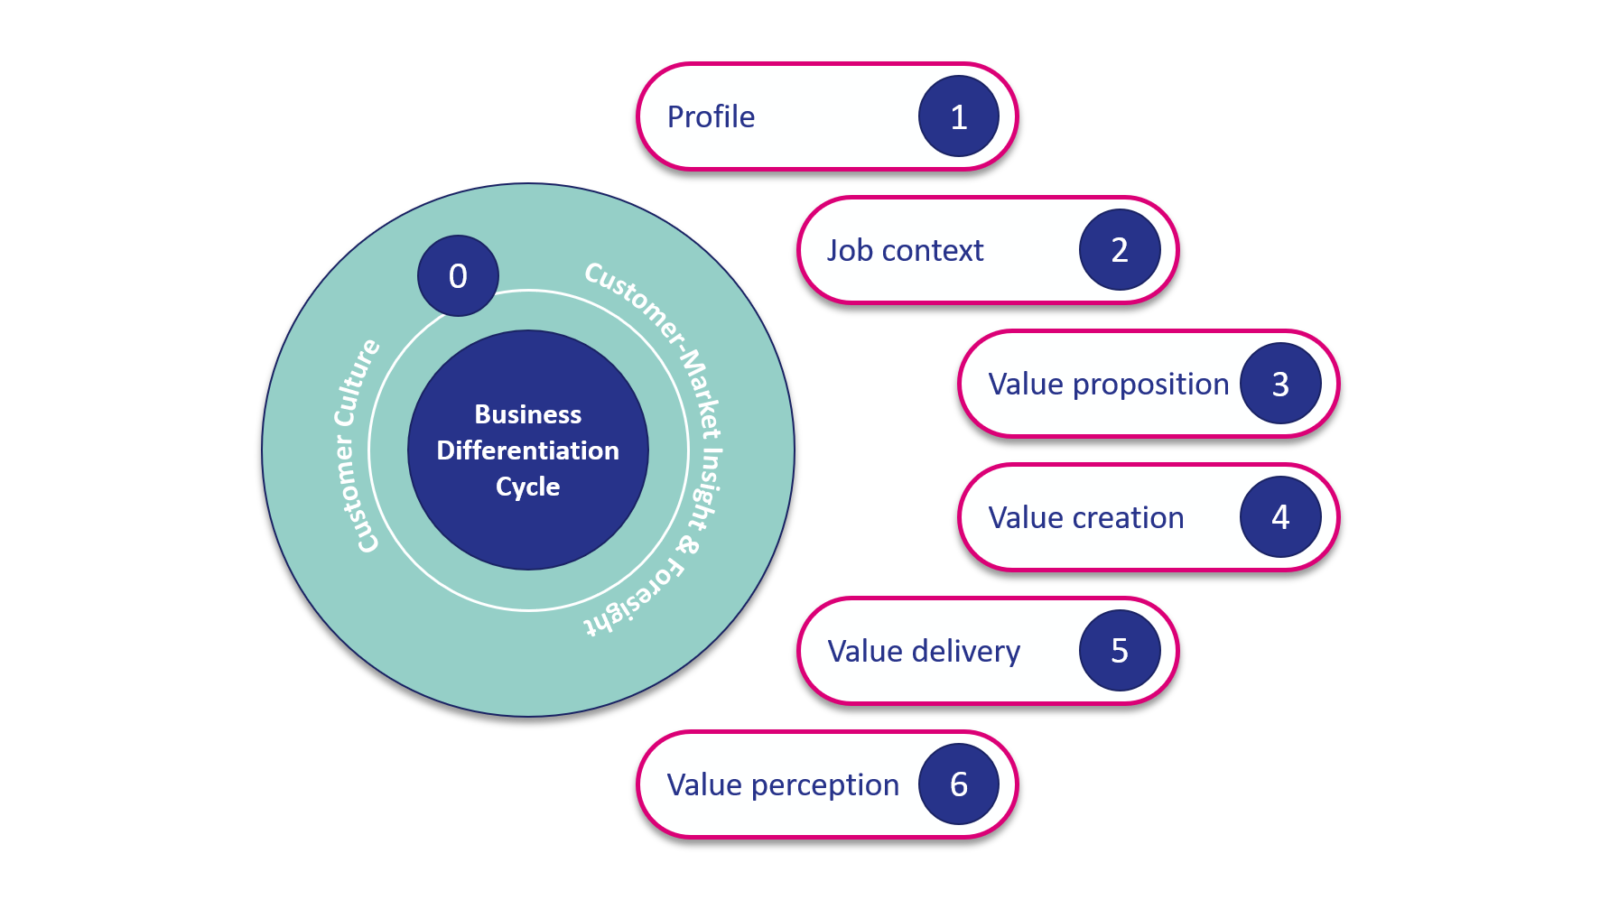 Business Differentiation Cycle